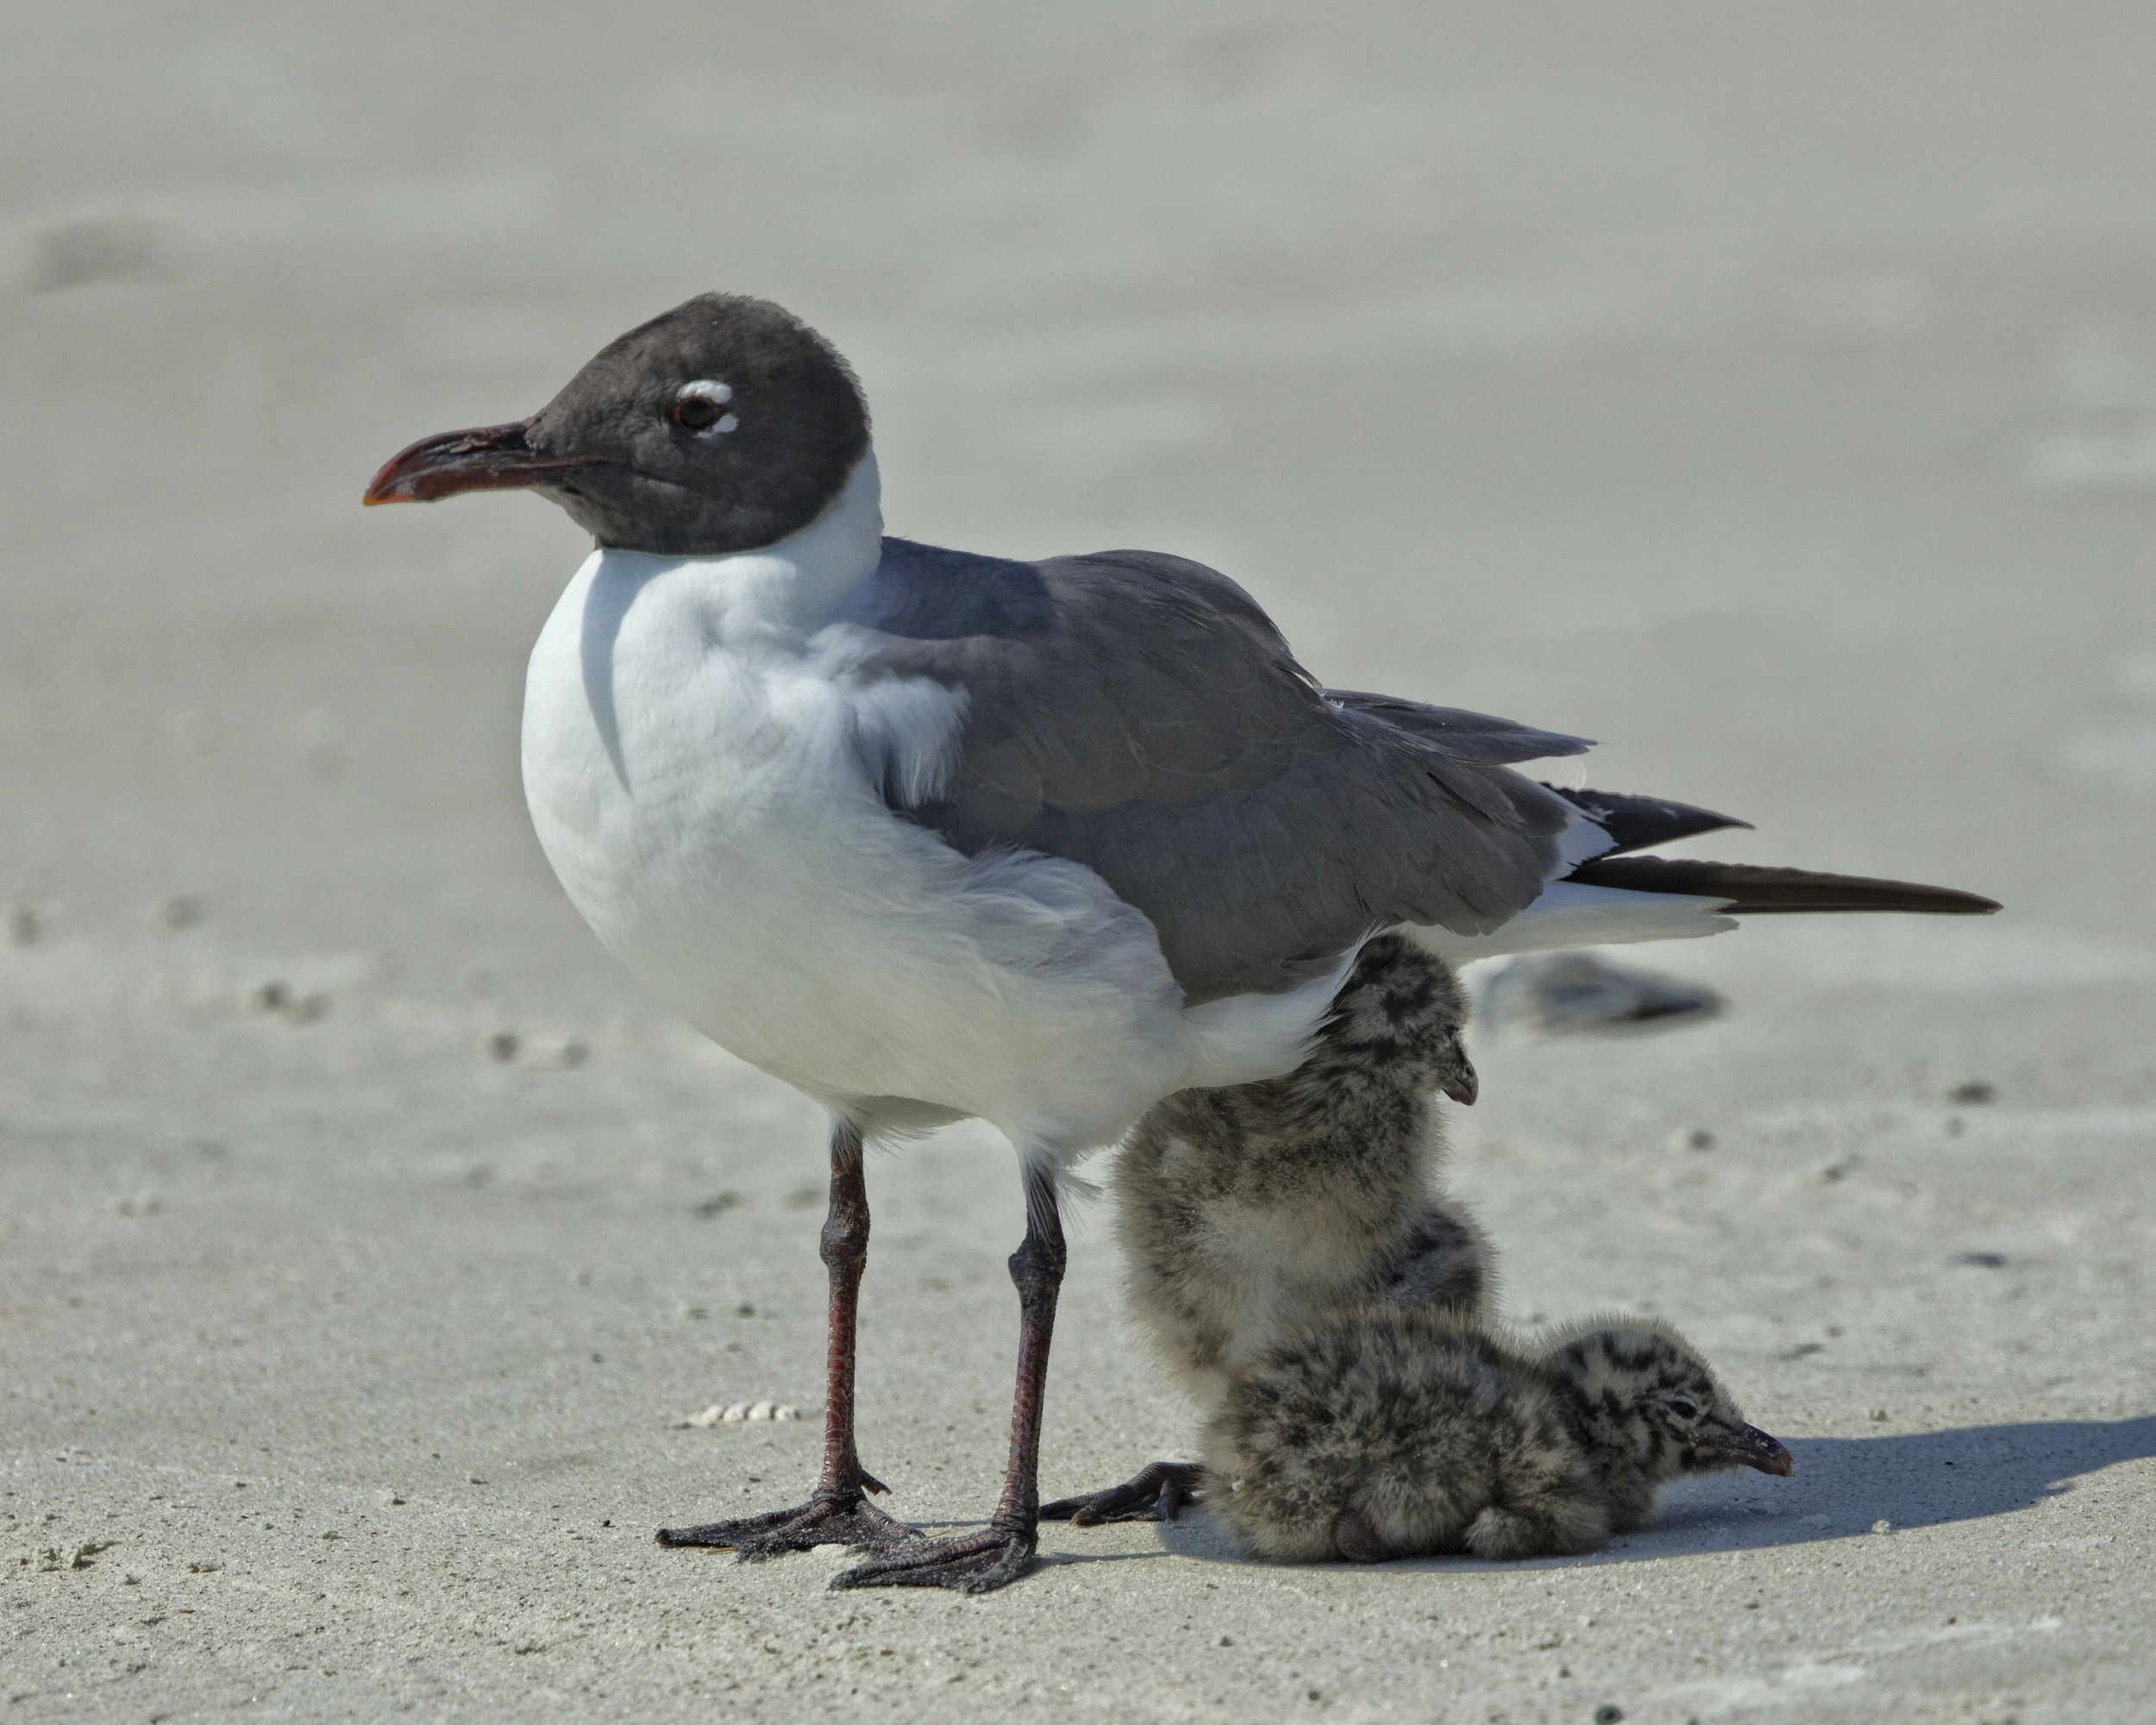 Found her! Young Laughing gull chicks abide in the shadow of their parents to keep cool.